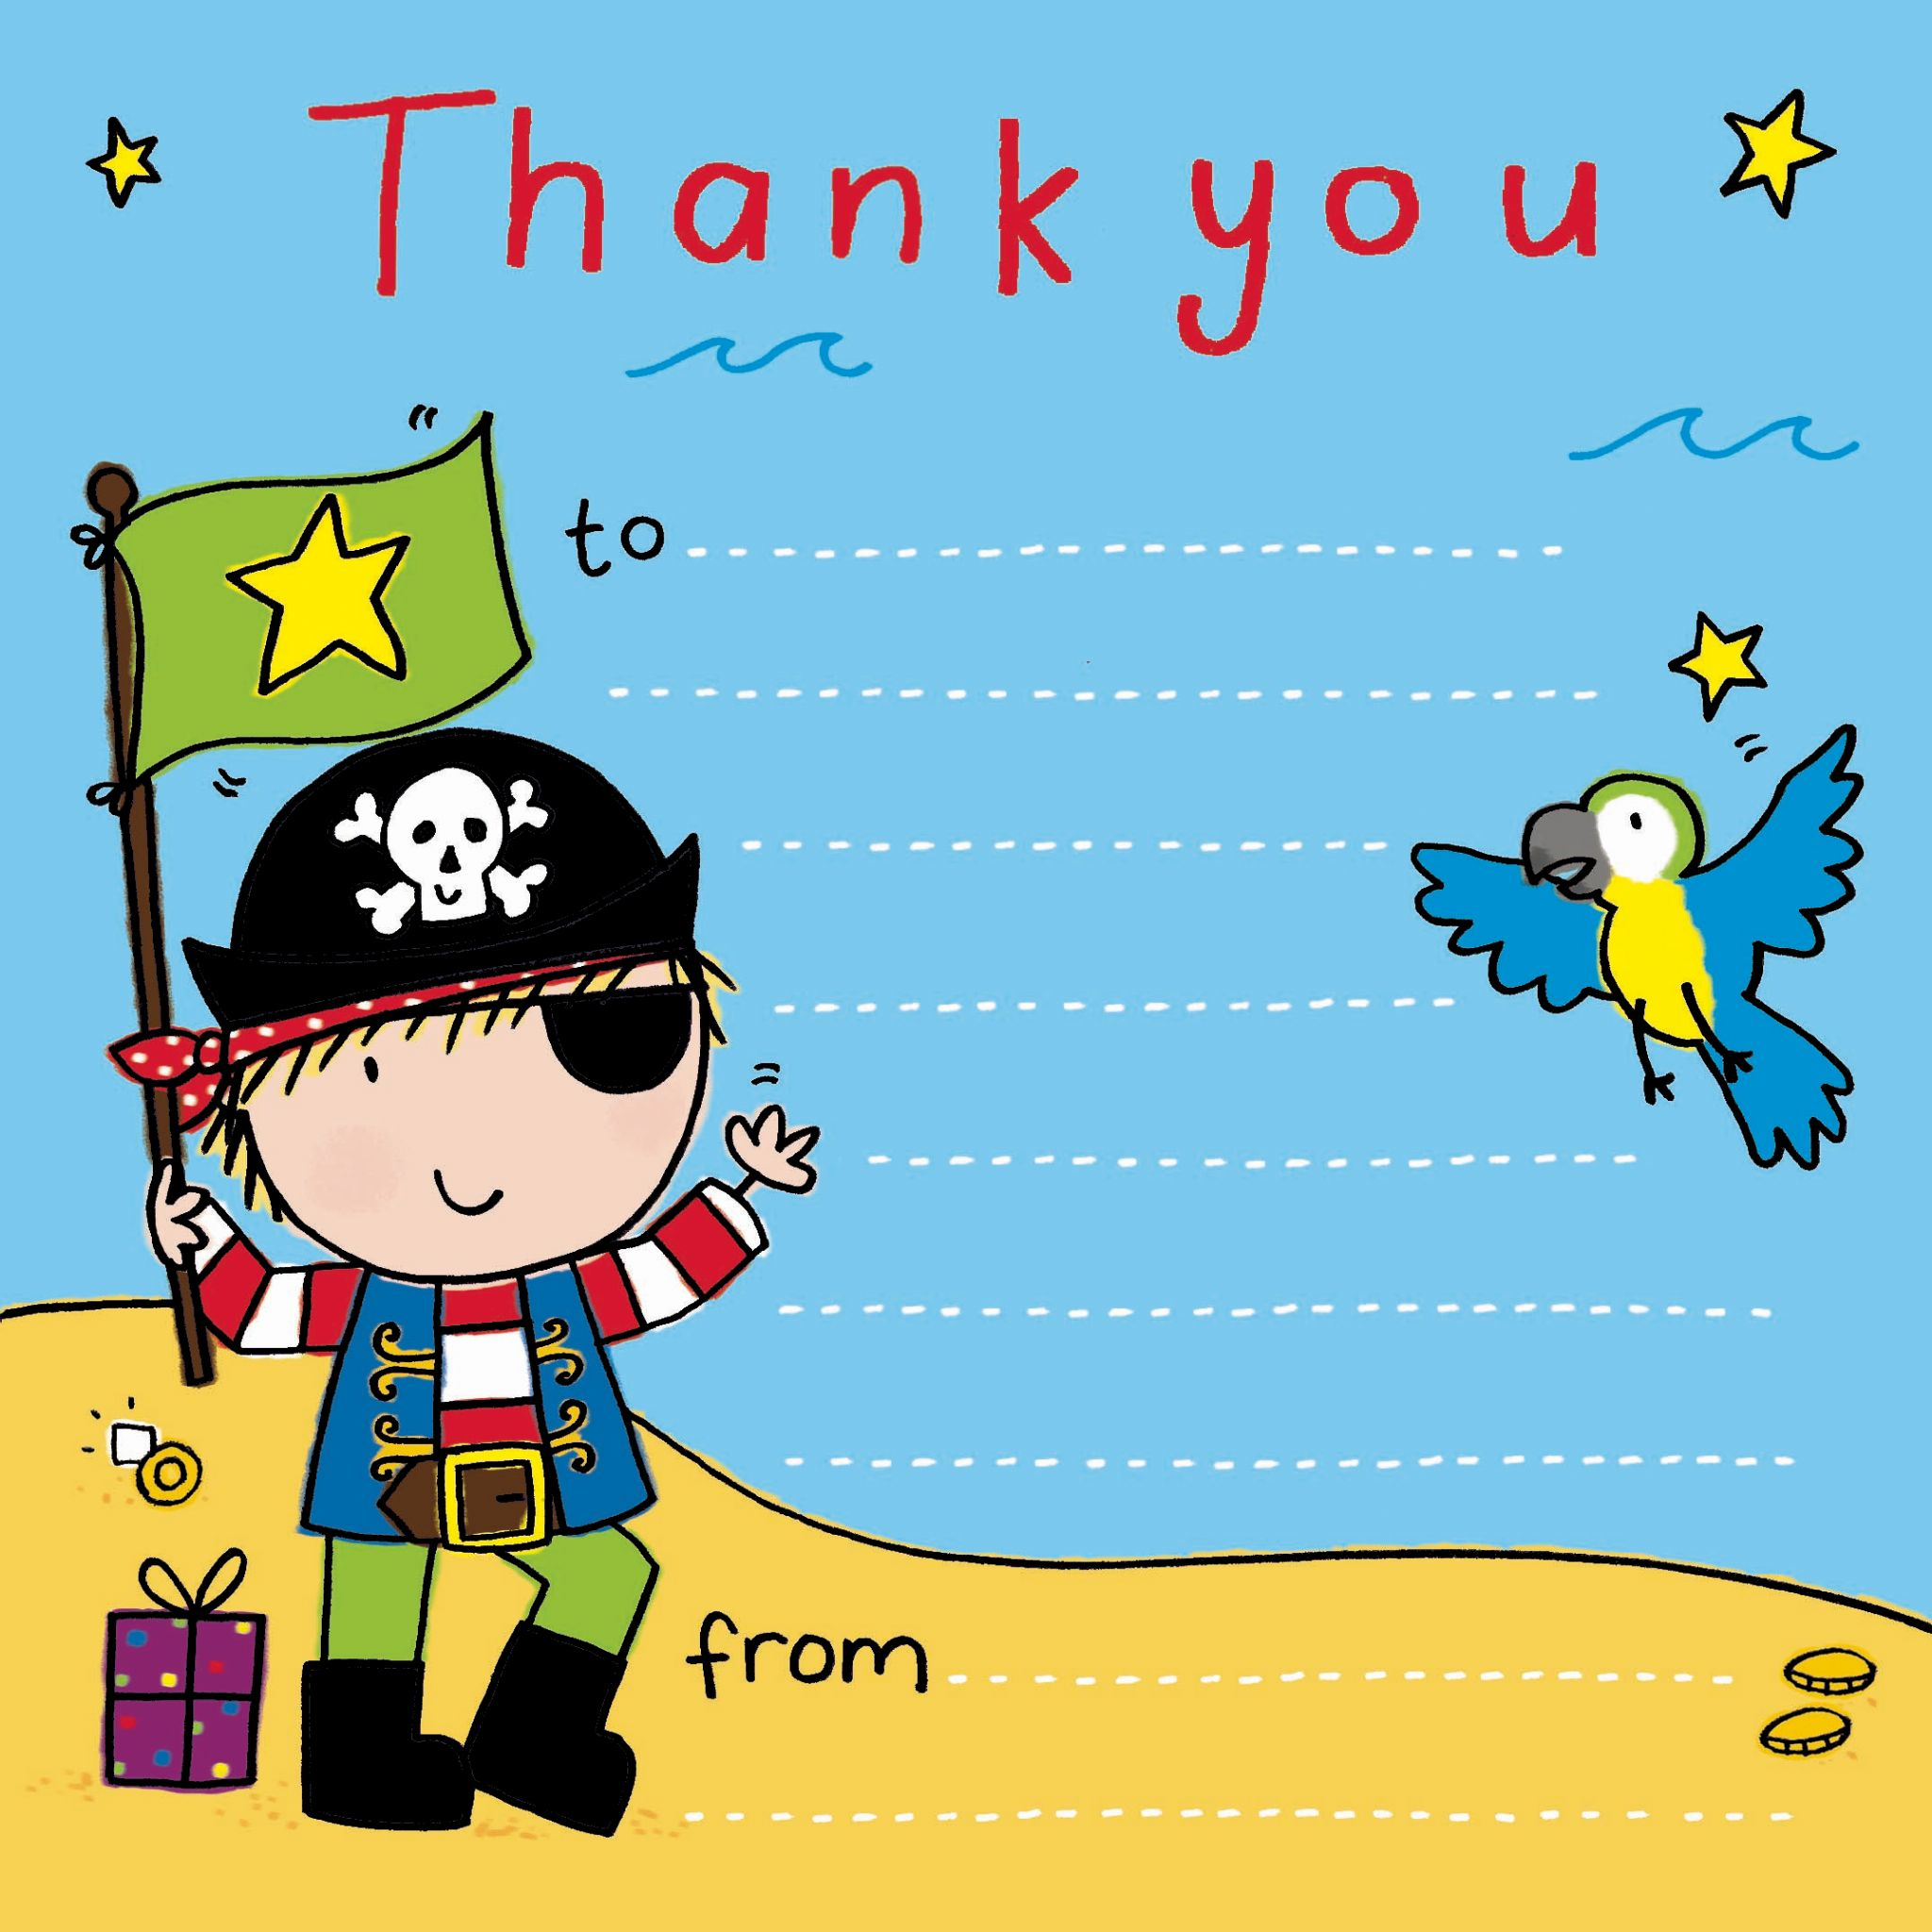 Thank You Notes For Kids Thank You Cards For Children Kids Thank - Children's birthday thank you notes